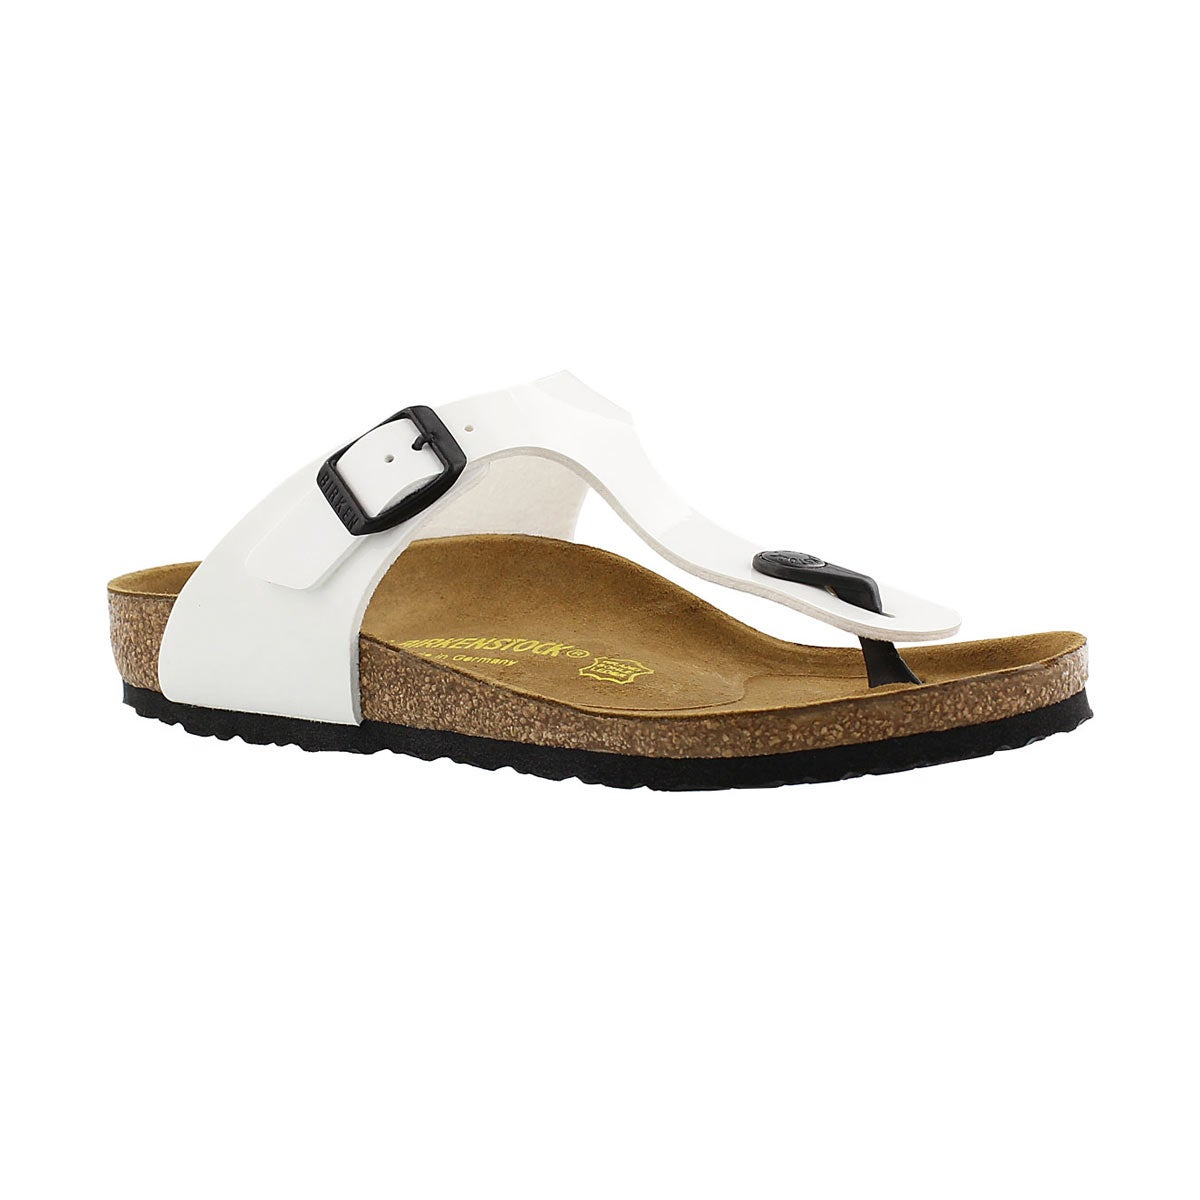 Girls' GIZEH white patent sandals - Narrow